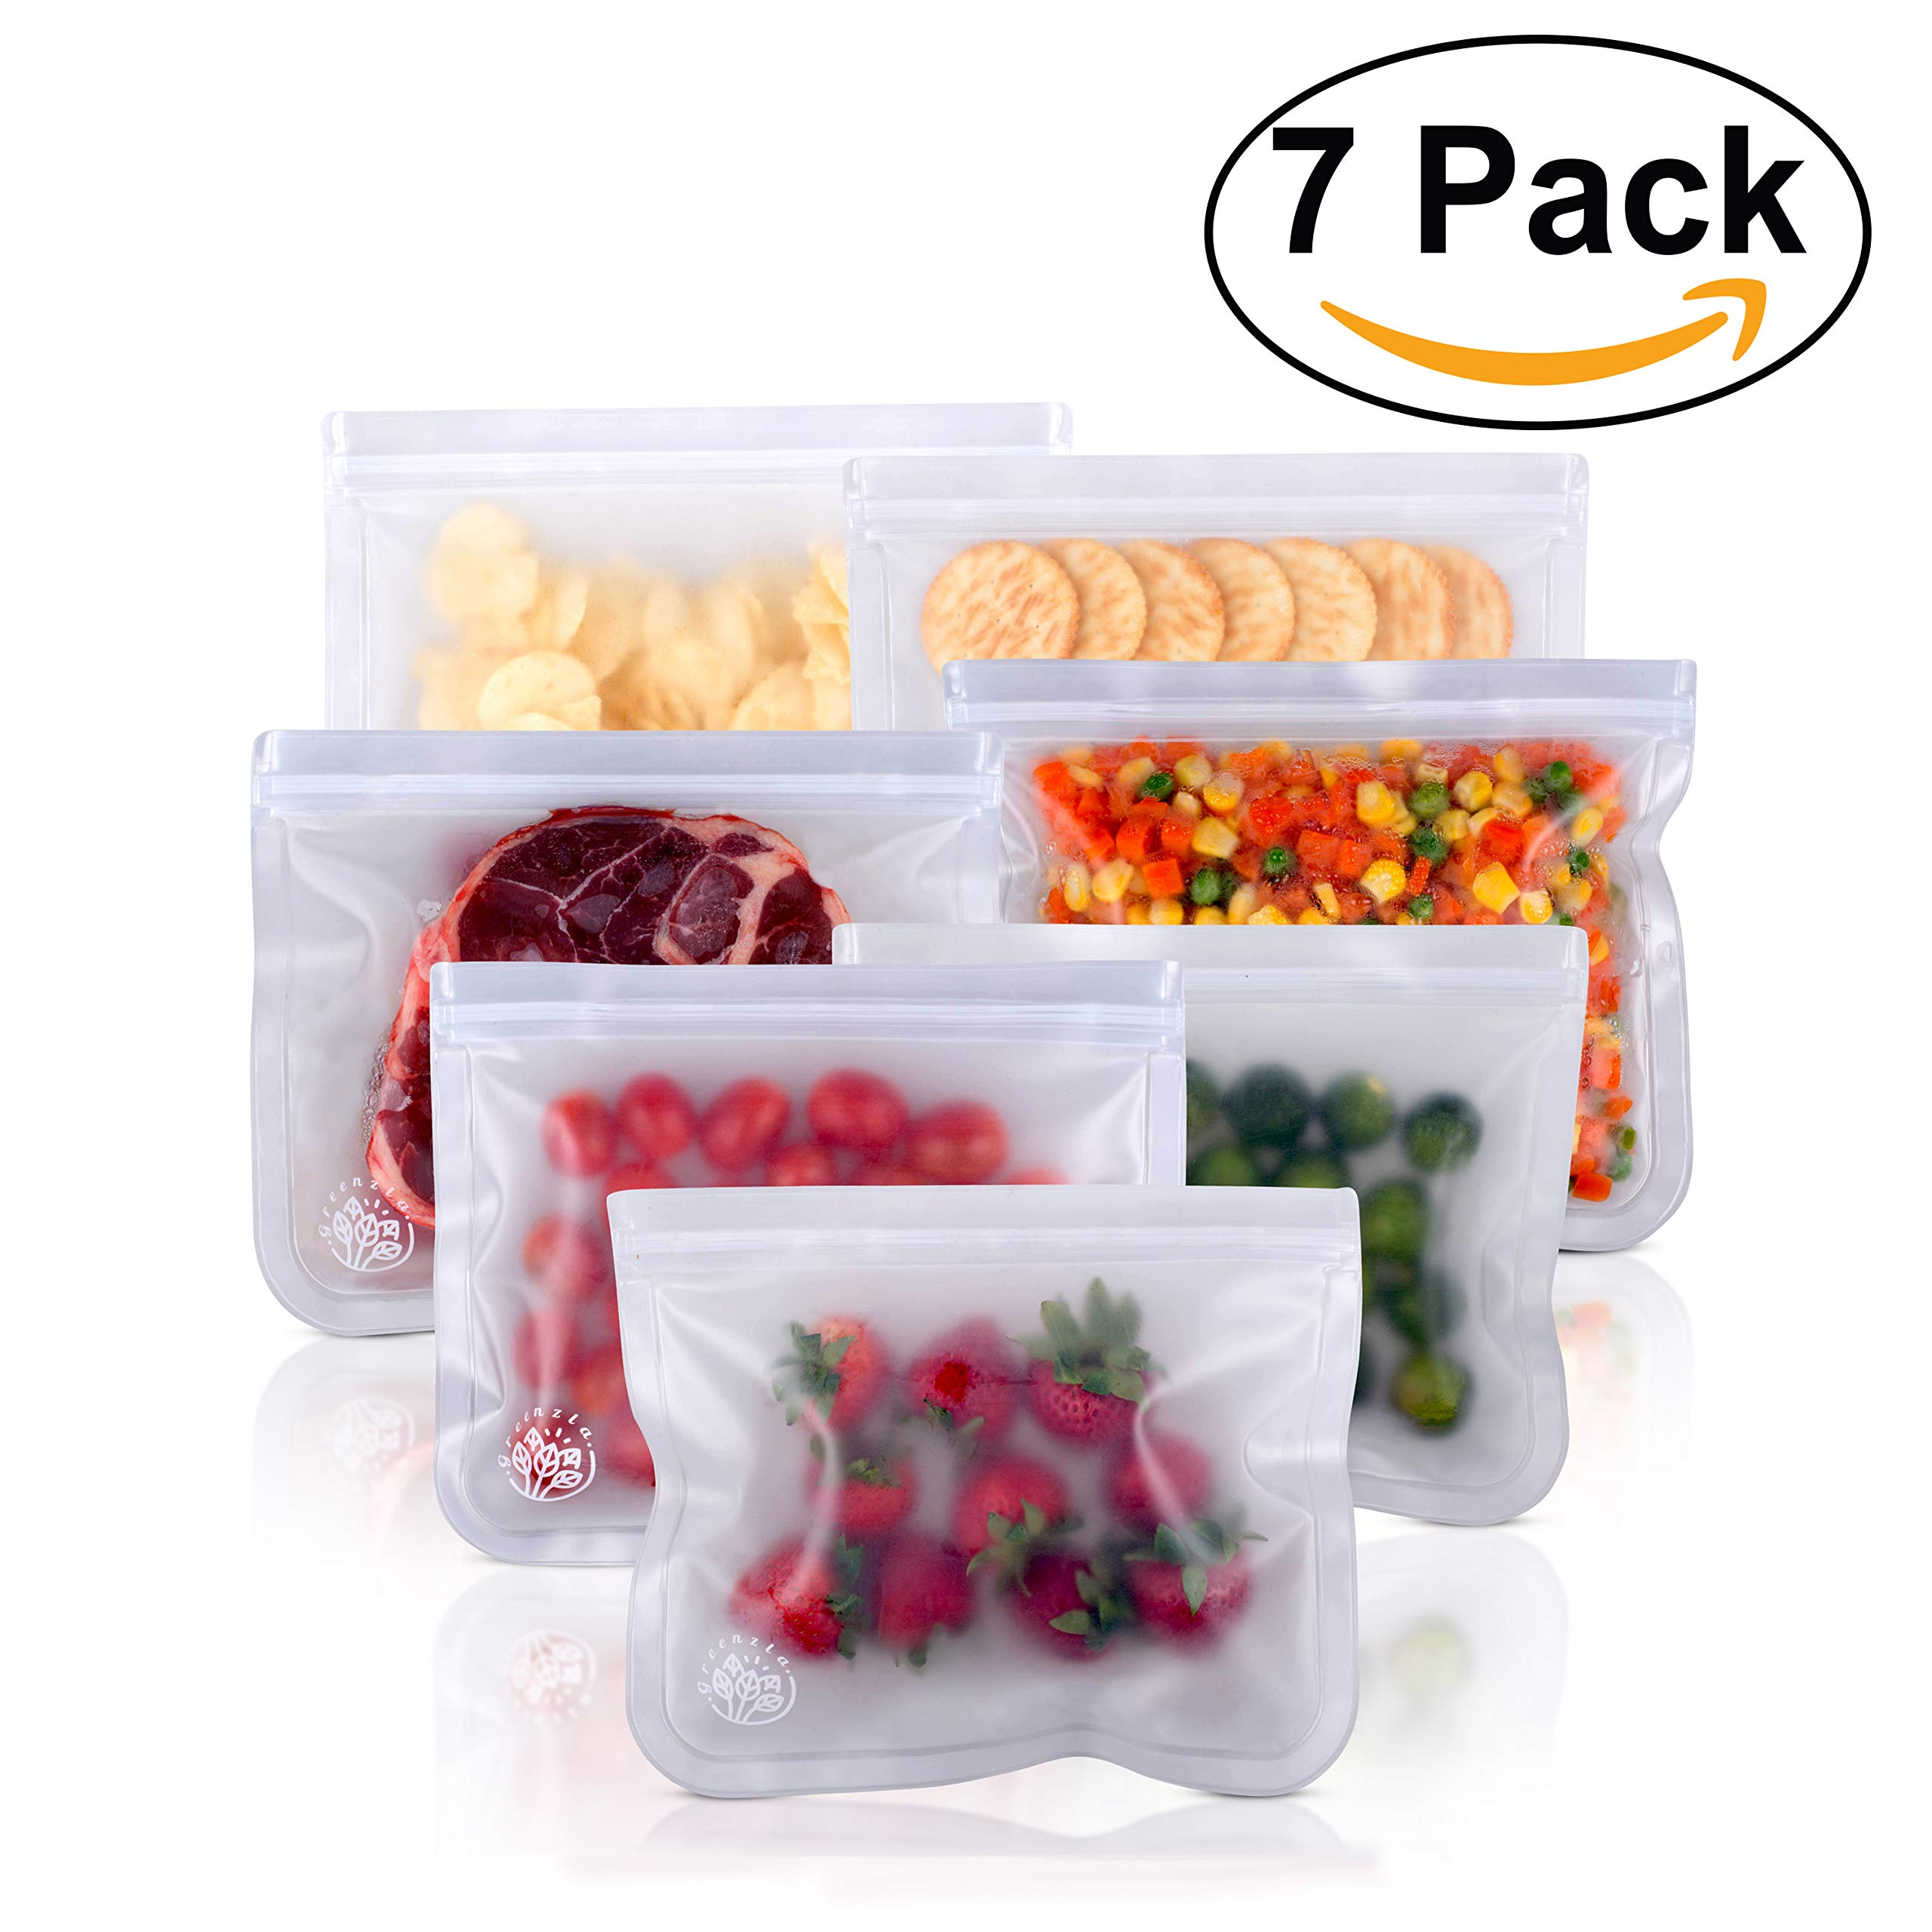 Greenzla Reusable Sandwich Bags (7-Pack) - FDA Approved Reusable Ziploc Lunch Bag - PEVA Storage Bag for Produce, Food and Kitchen Organization - Leakproof Snack Bags Meal Containers - 7 Large Bags